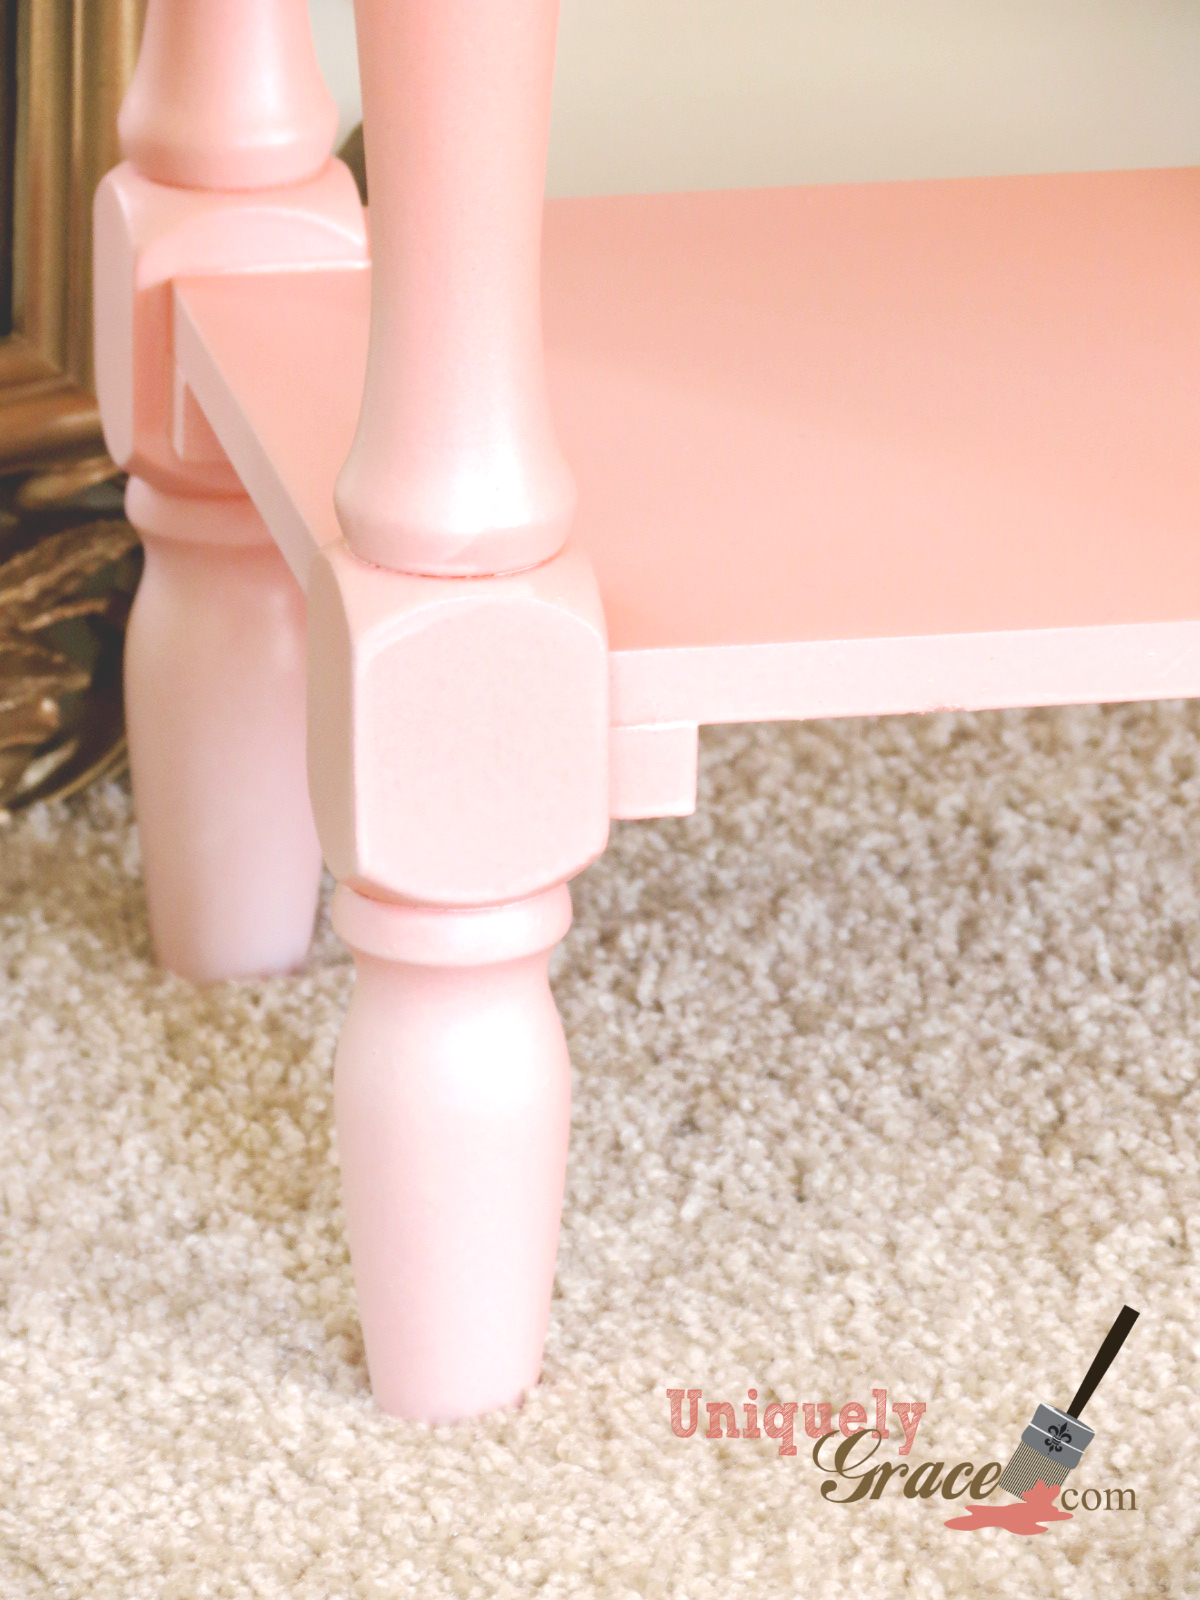 Callista Two Drawer Console Table With Shelves as well Storage Trolley Drawers additionally 13 Ikea Hacks Take Furniture Next Level moreover Rolling File Cart Ikea as well Tire Pulling Harness. on ombre 10 drawer cart